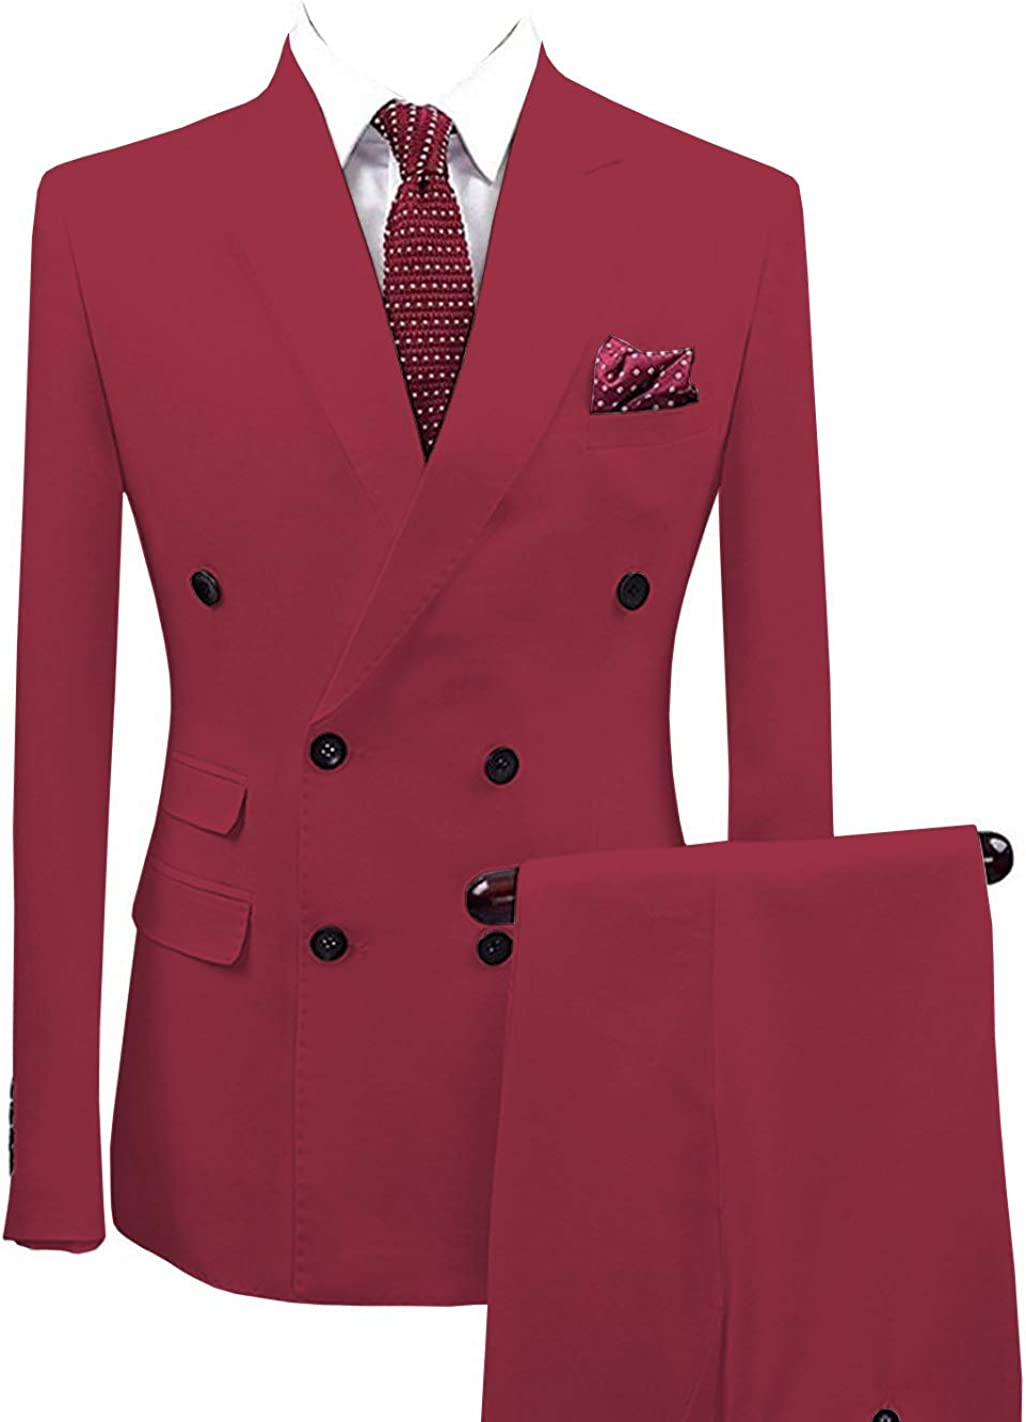 ToonySume Men's Suits 2 Pieces Notch Breasted Double Regular Fit San Antonio Mall Latest item